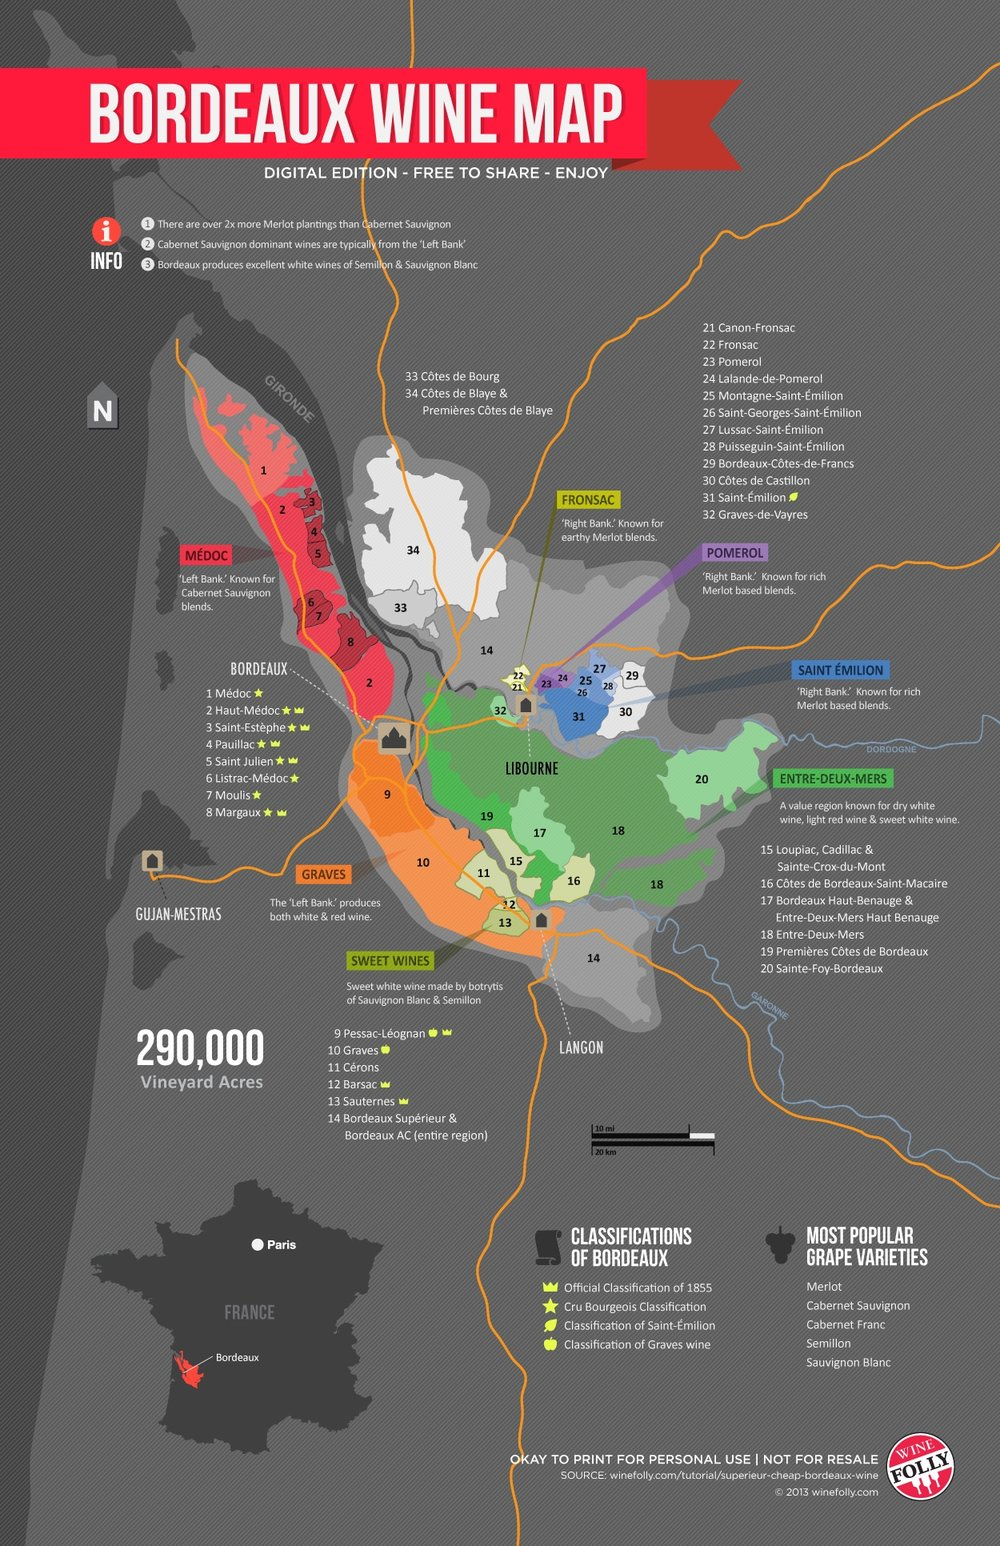 Bordeaux Wine Map, courtesy of Wine Folly